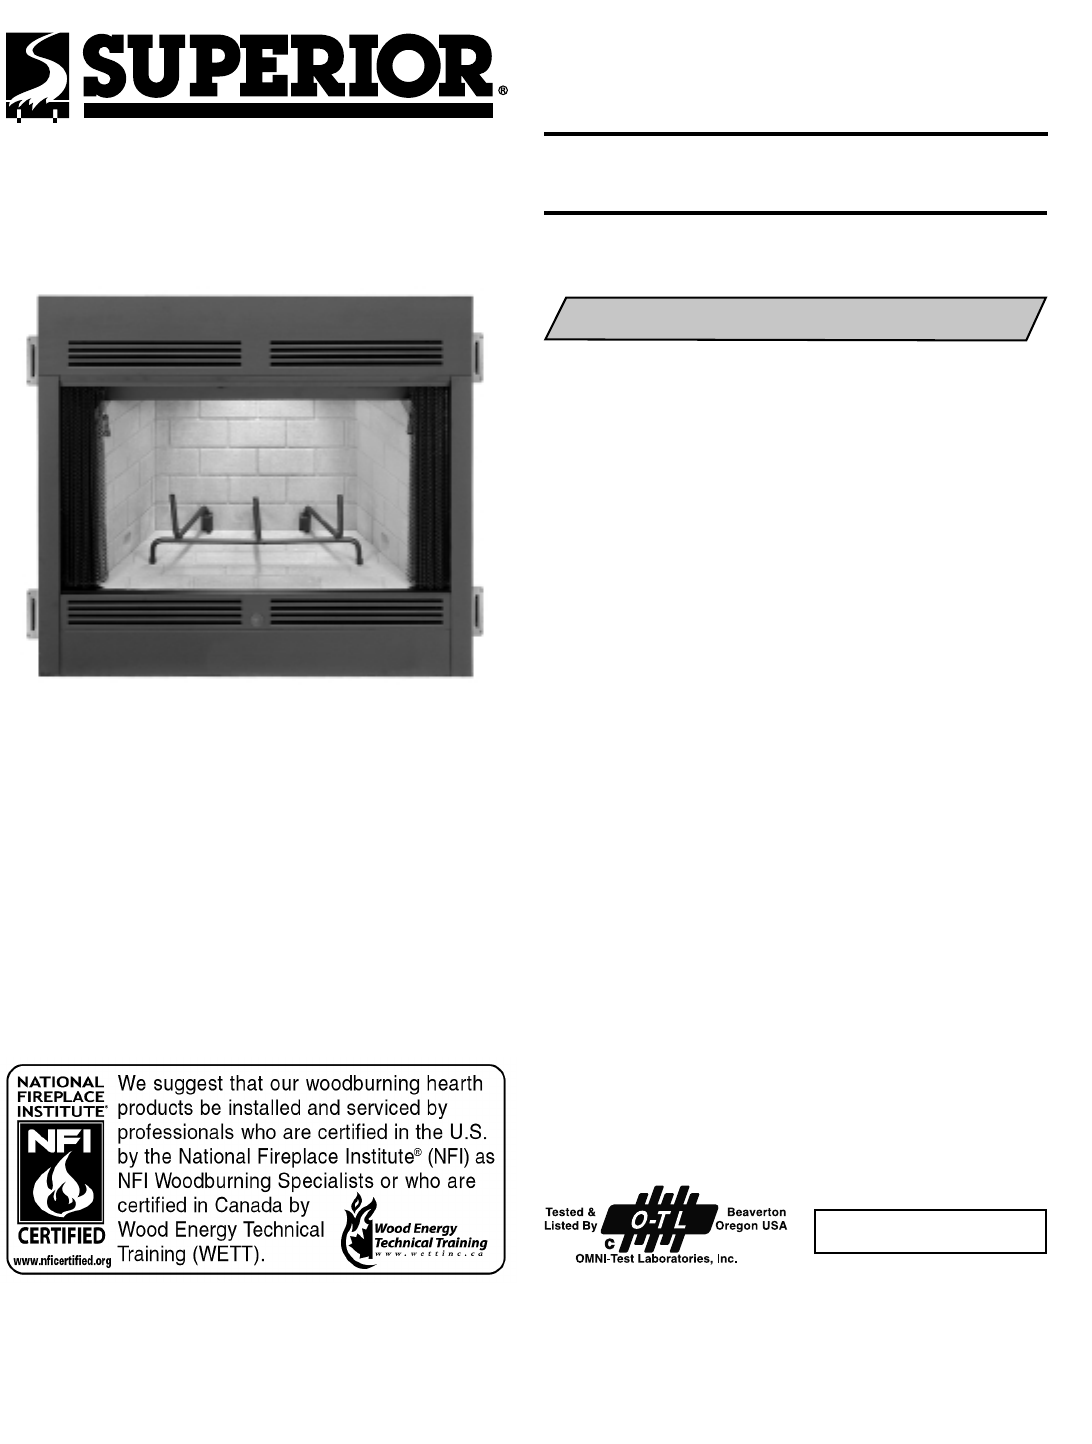 Superior Indoor Fireplace BR-36-2 User Guide | ManualsOnline.com